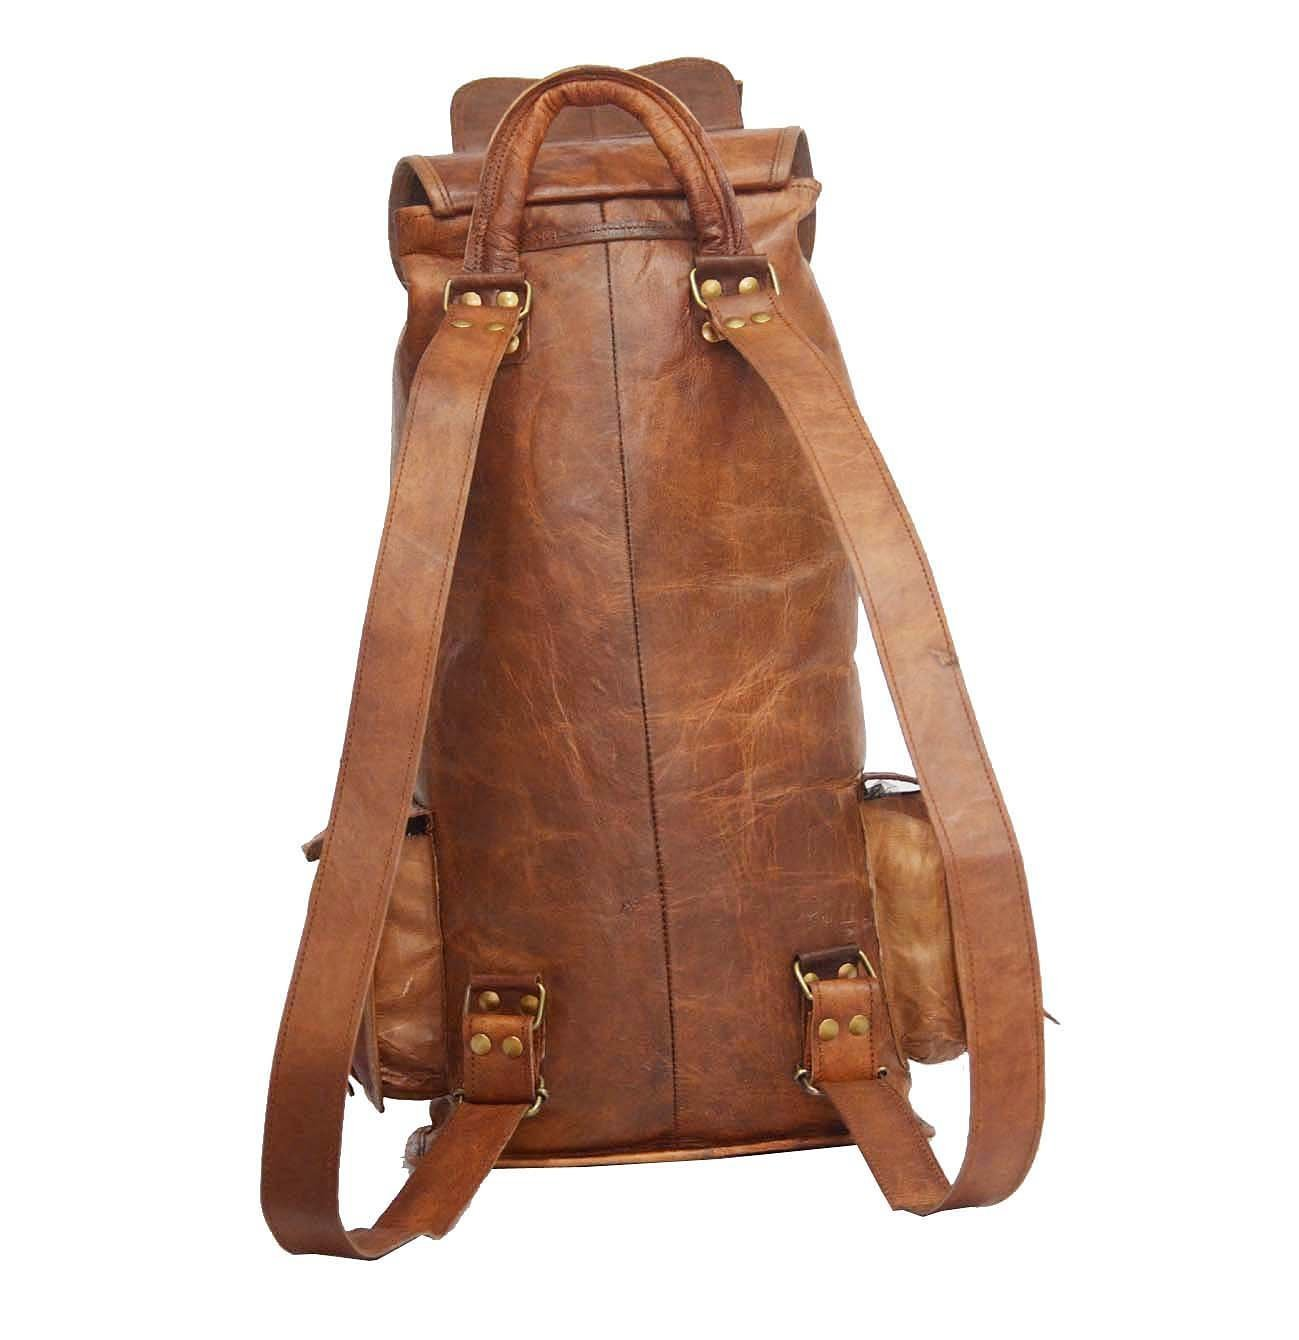 Prastara16 INCHES goat leather bags College Backpack Traveling Backpack For Unisex